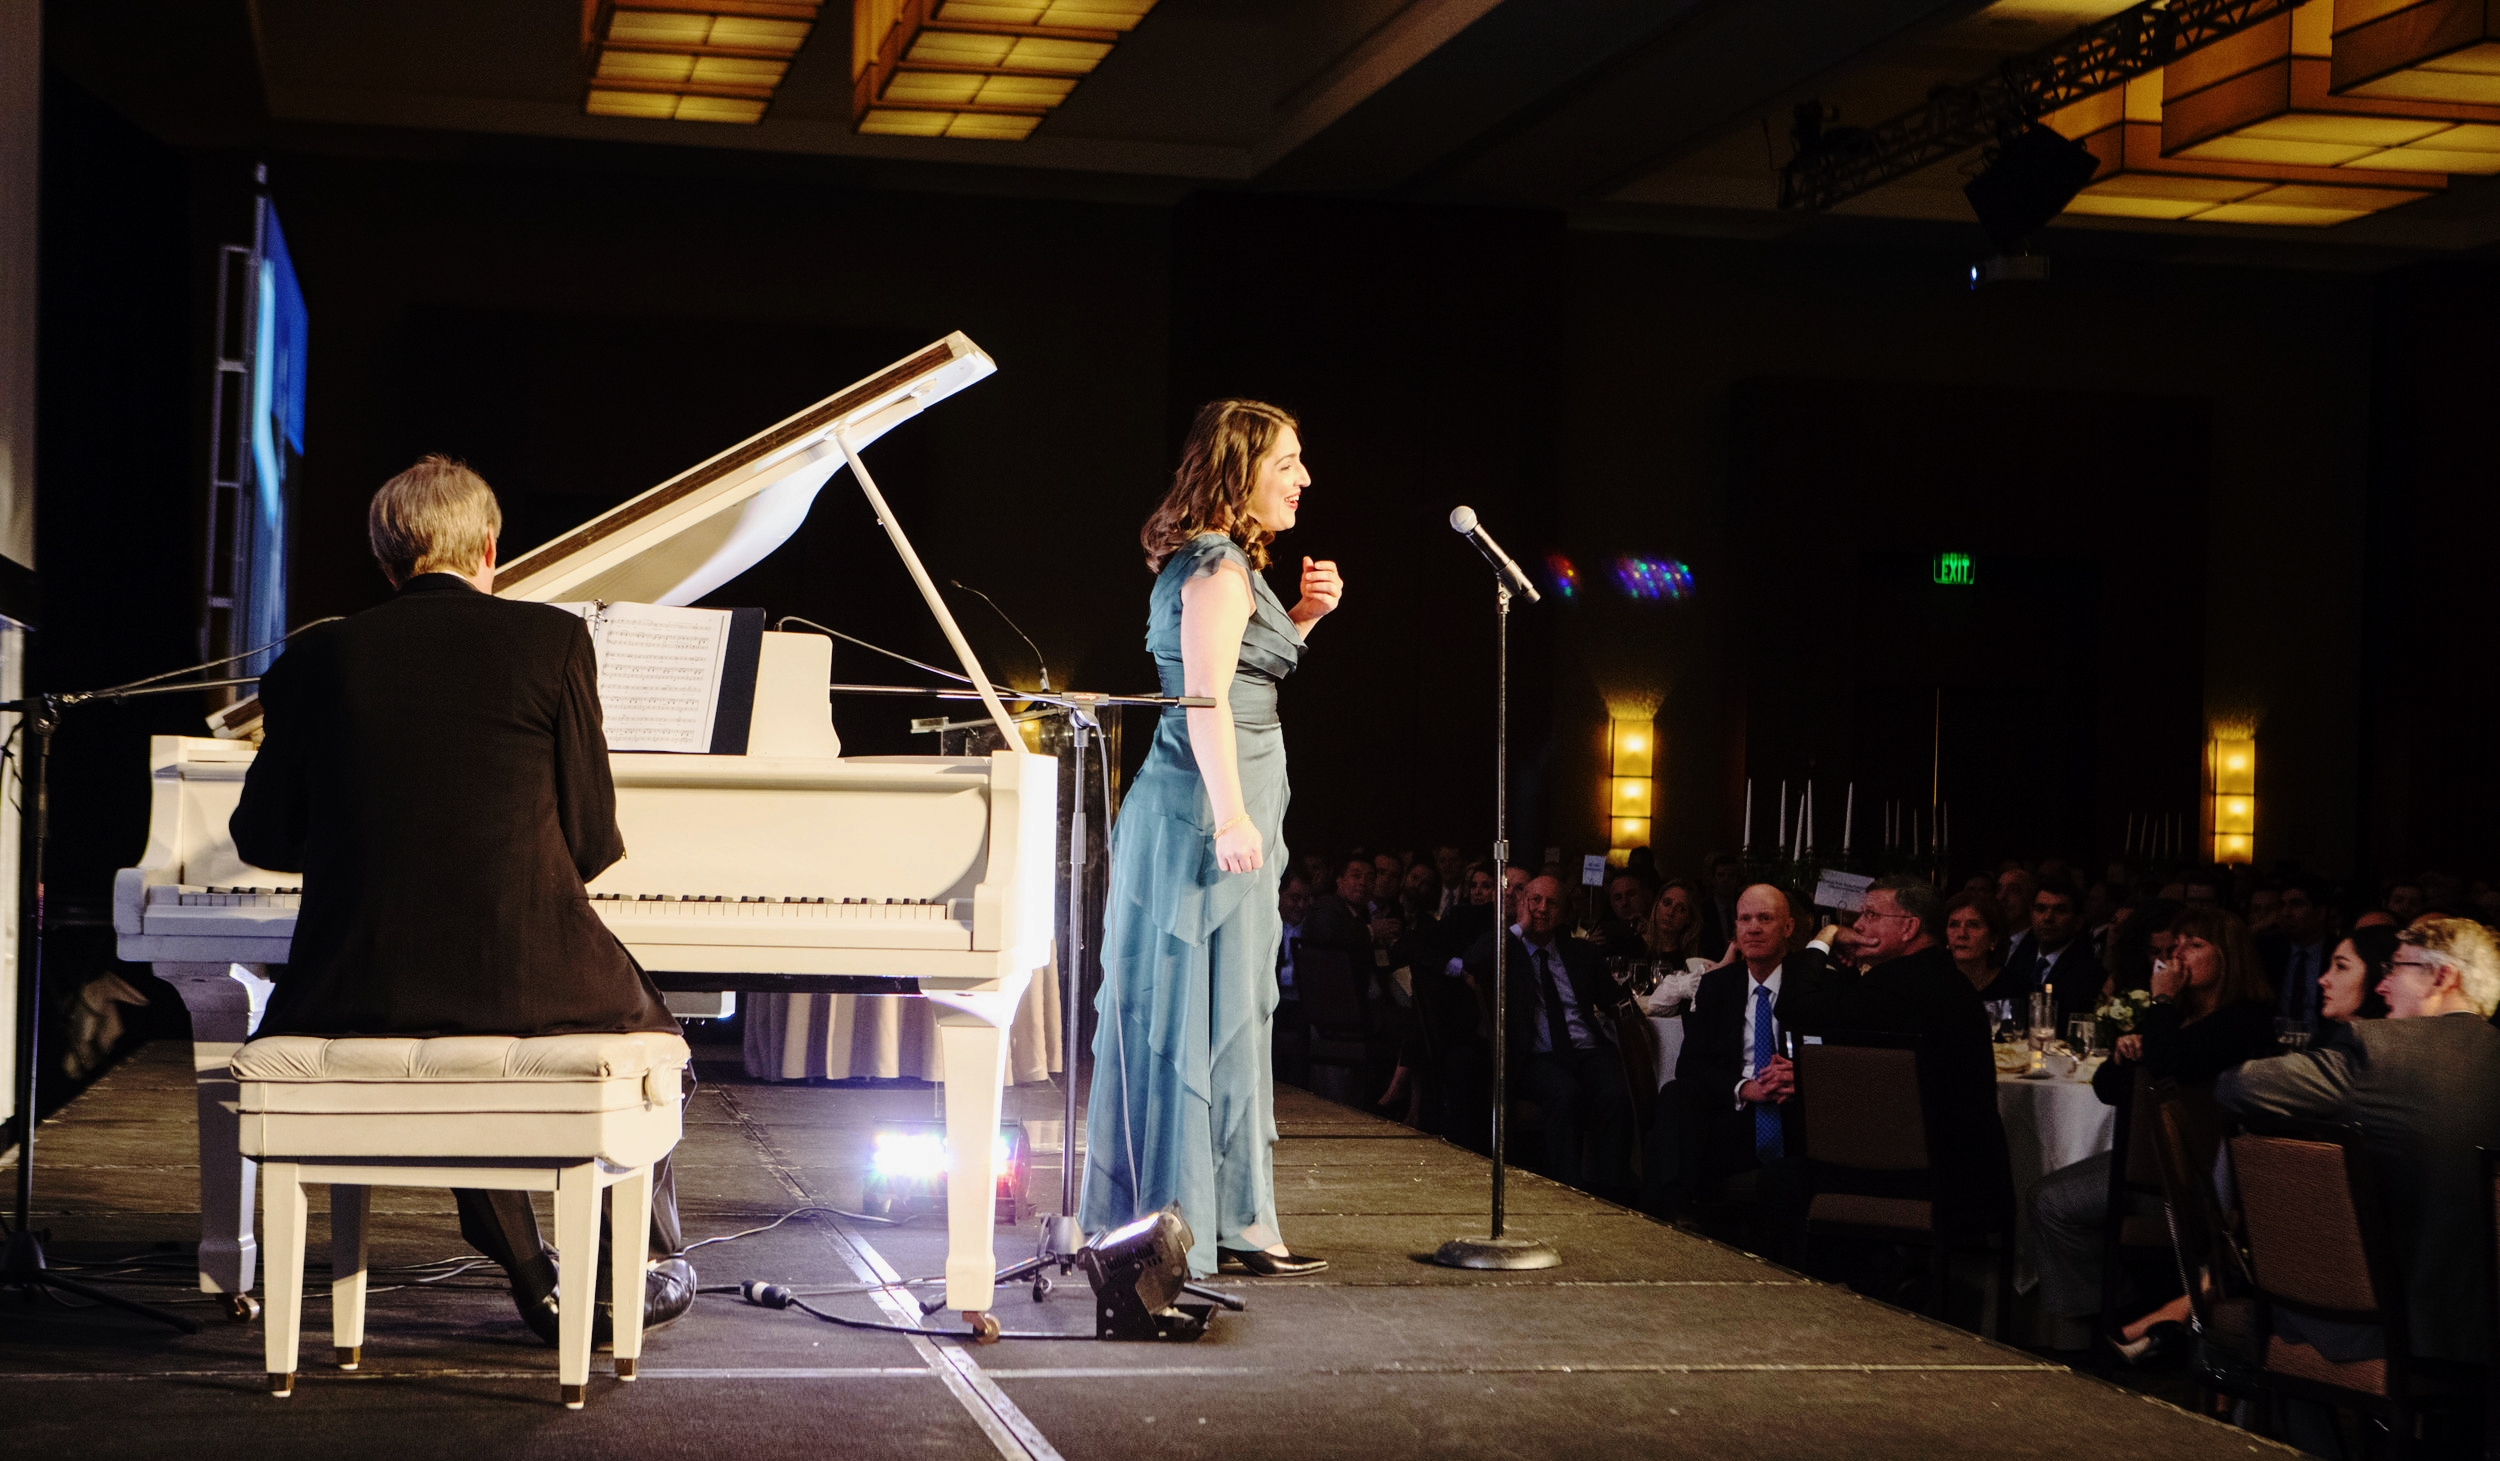 Ms. Worrell performs at NAIOP Massachusetts' 2017 Gala at the Westin Waterfront Hotel in Boston, MA.